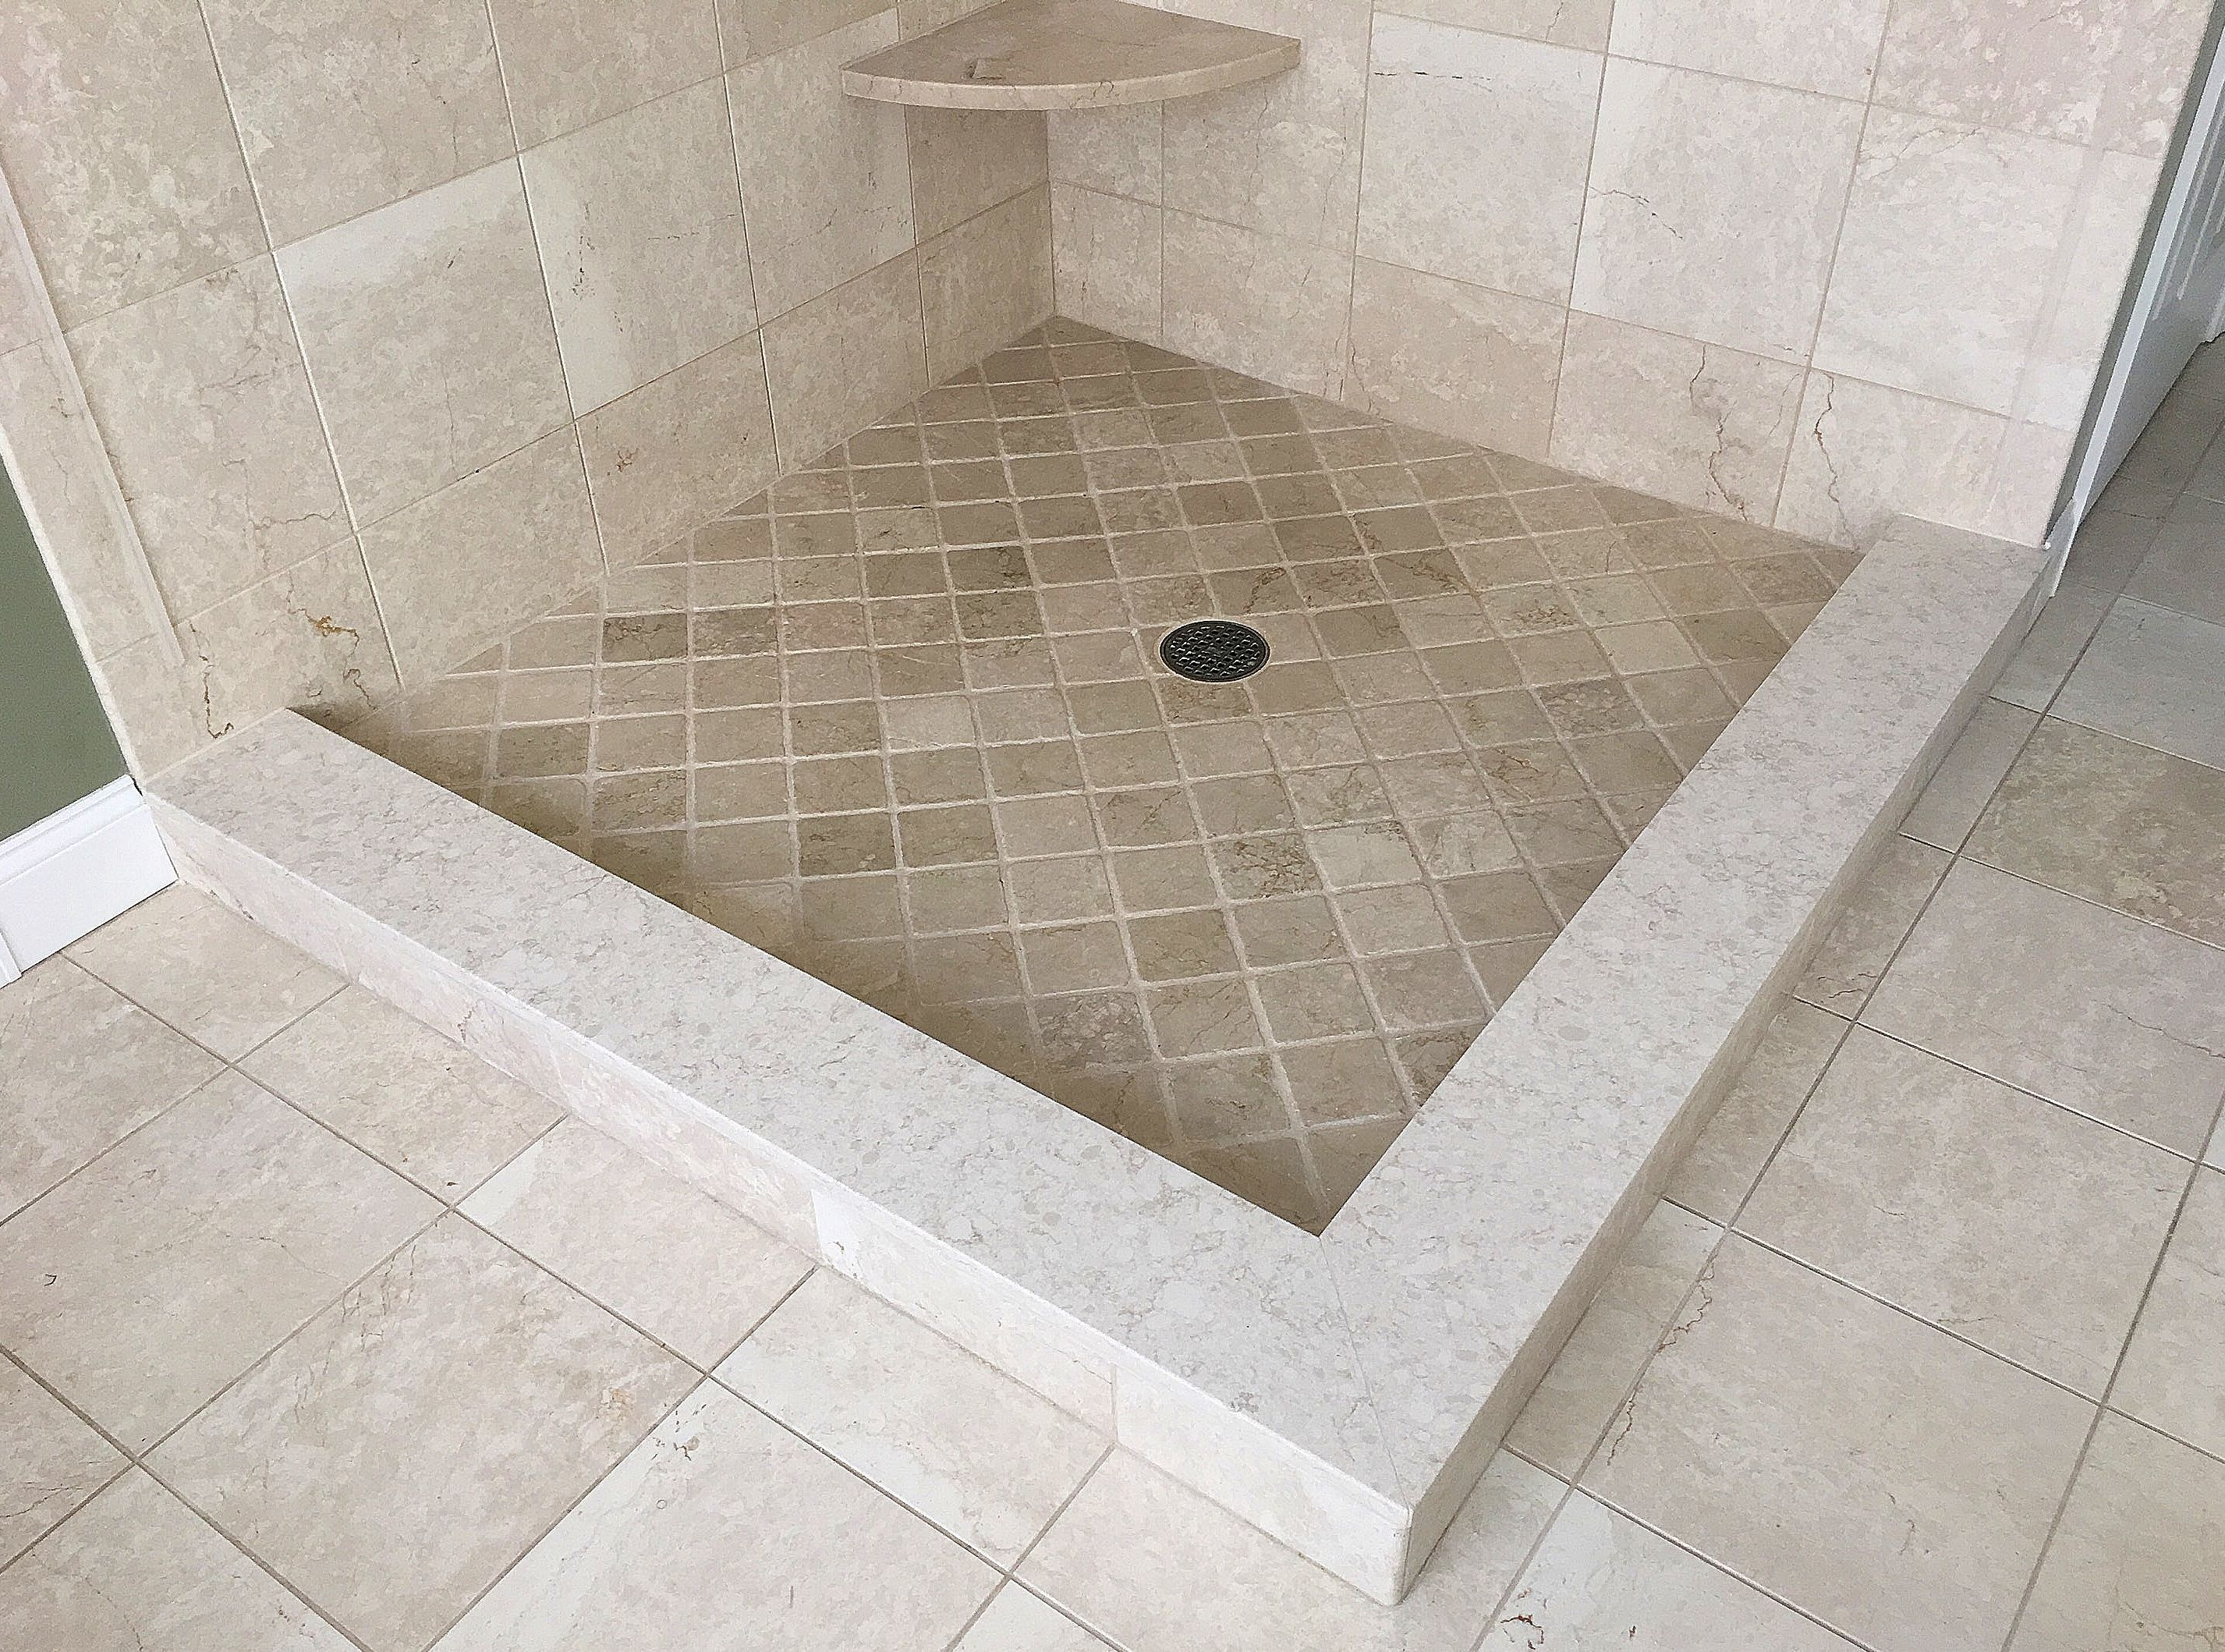 Traditional Botticino marble shower & floor tile with an